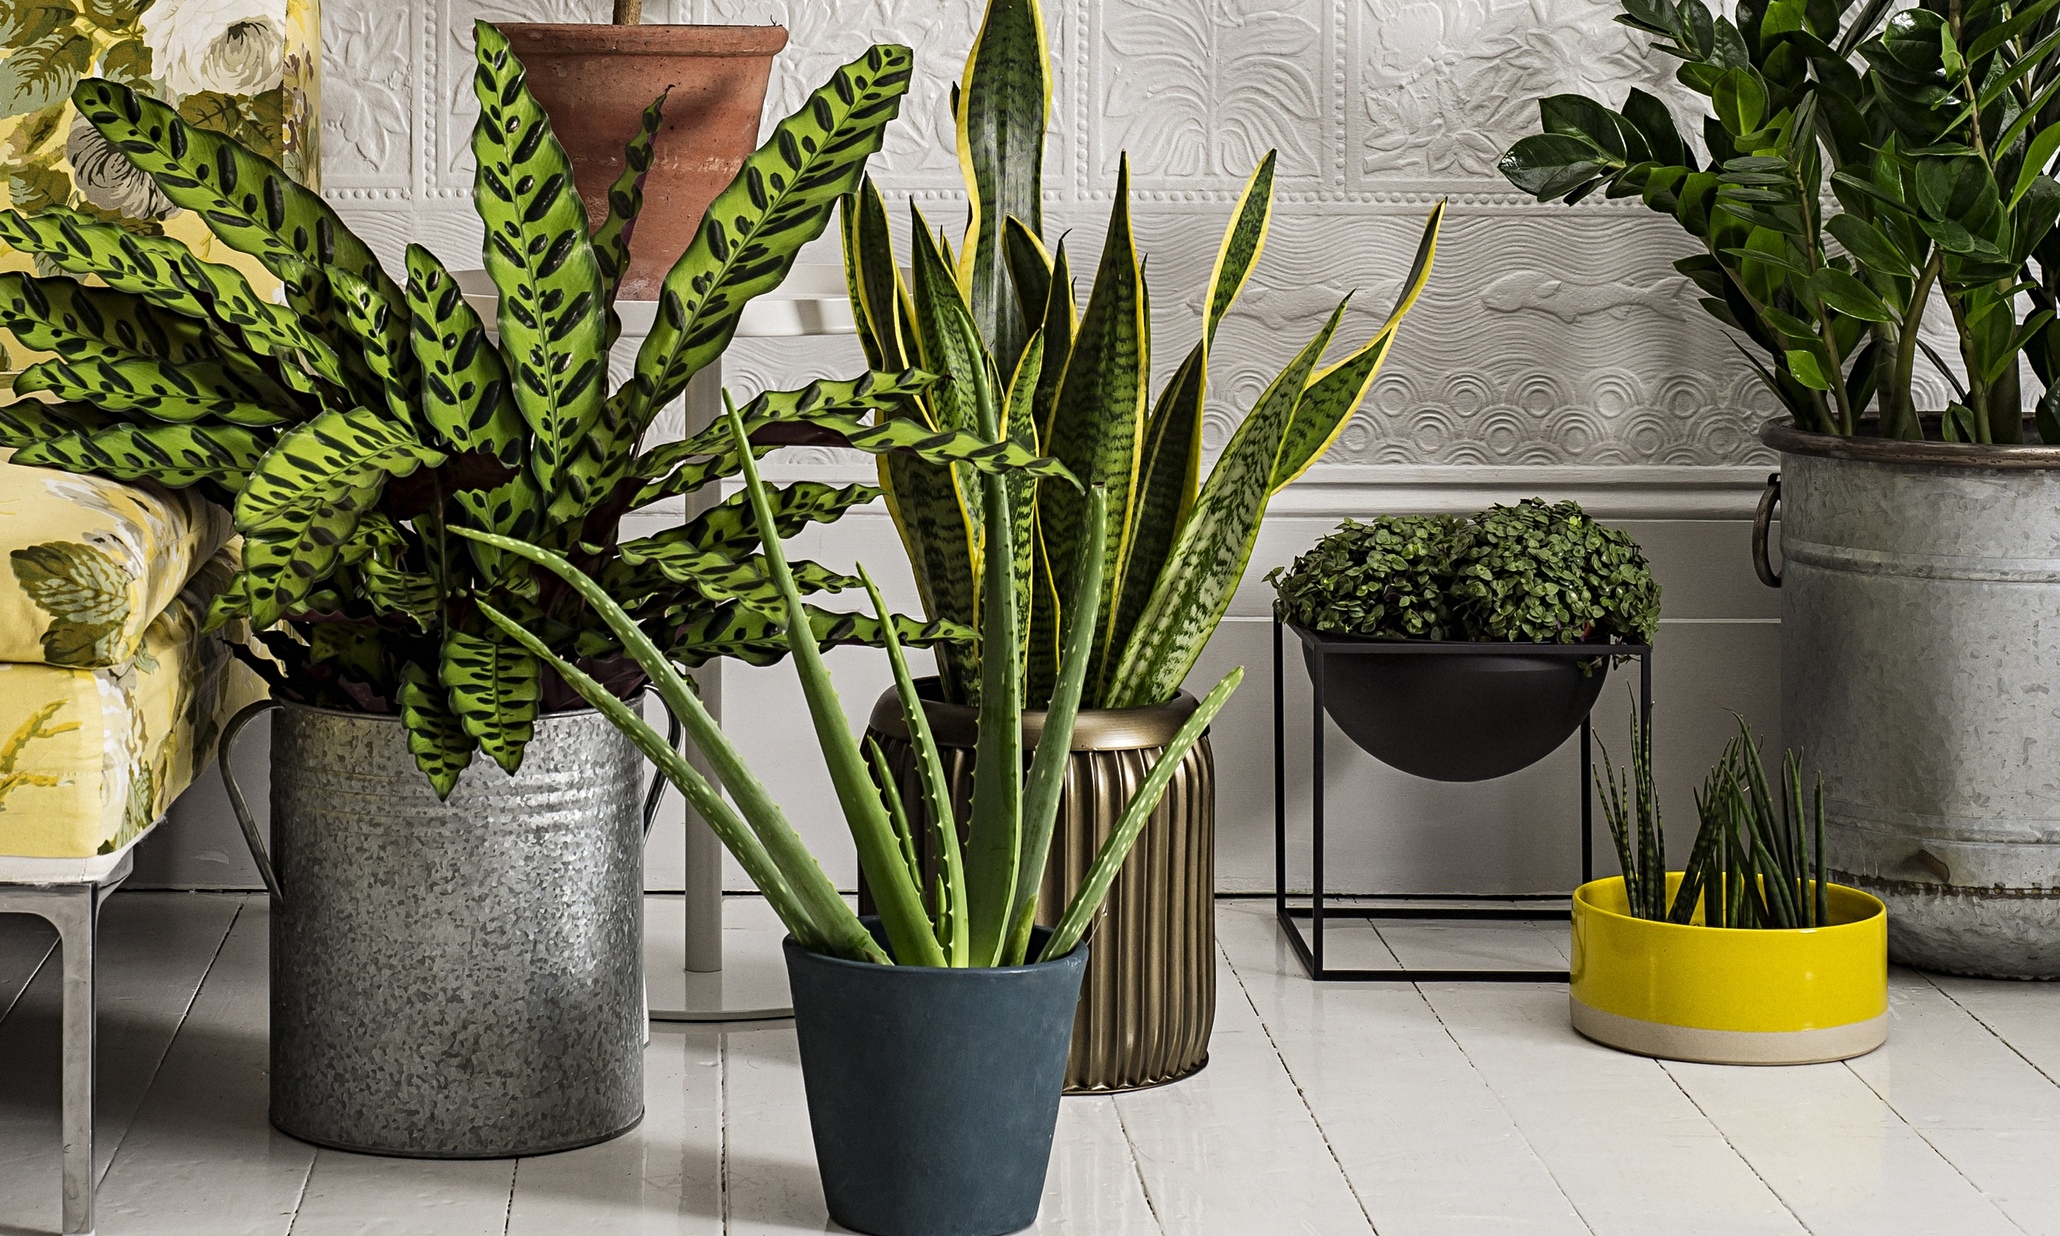 Plantas Para Macetas Exterior Resistentes How To Make The Most Of House Plants | Life And Style